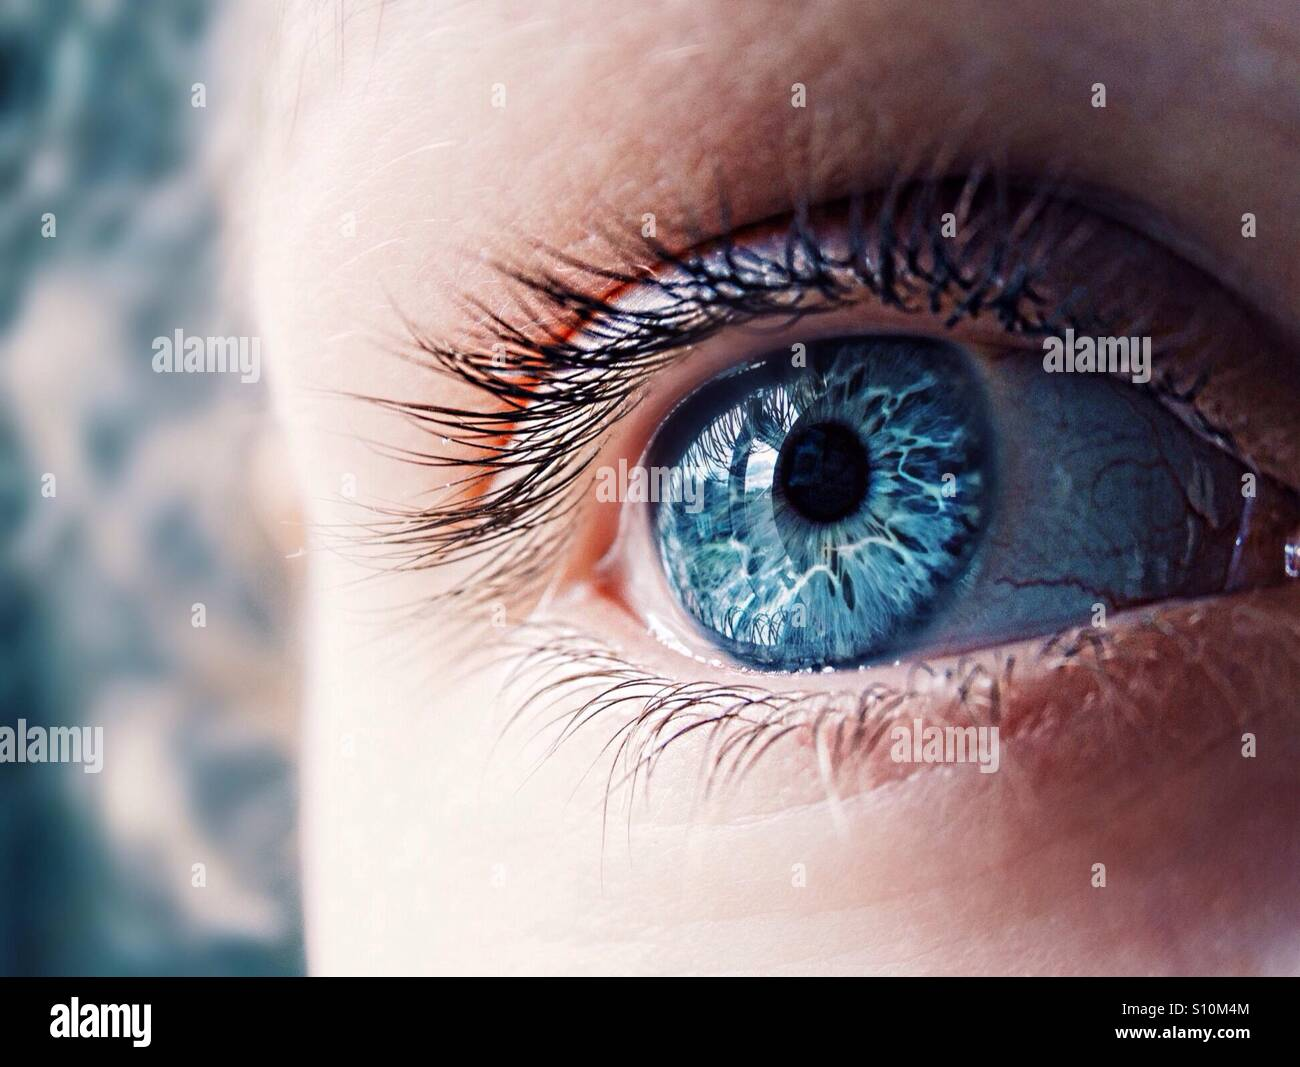 Close up of an eye - Stock Image